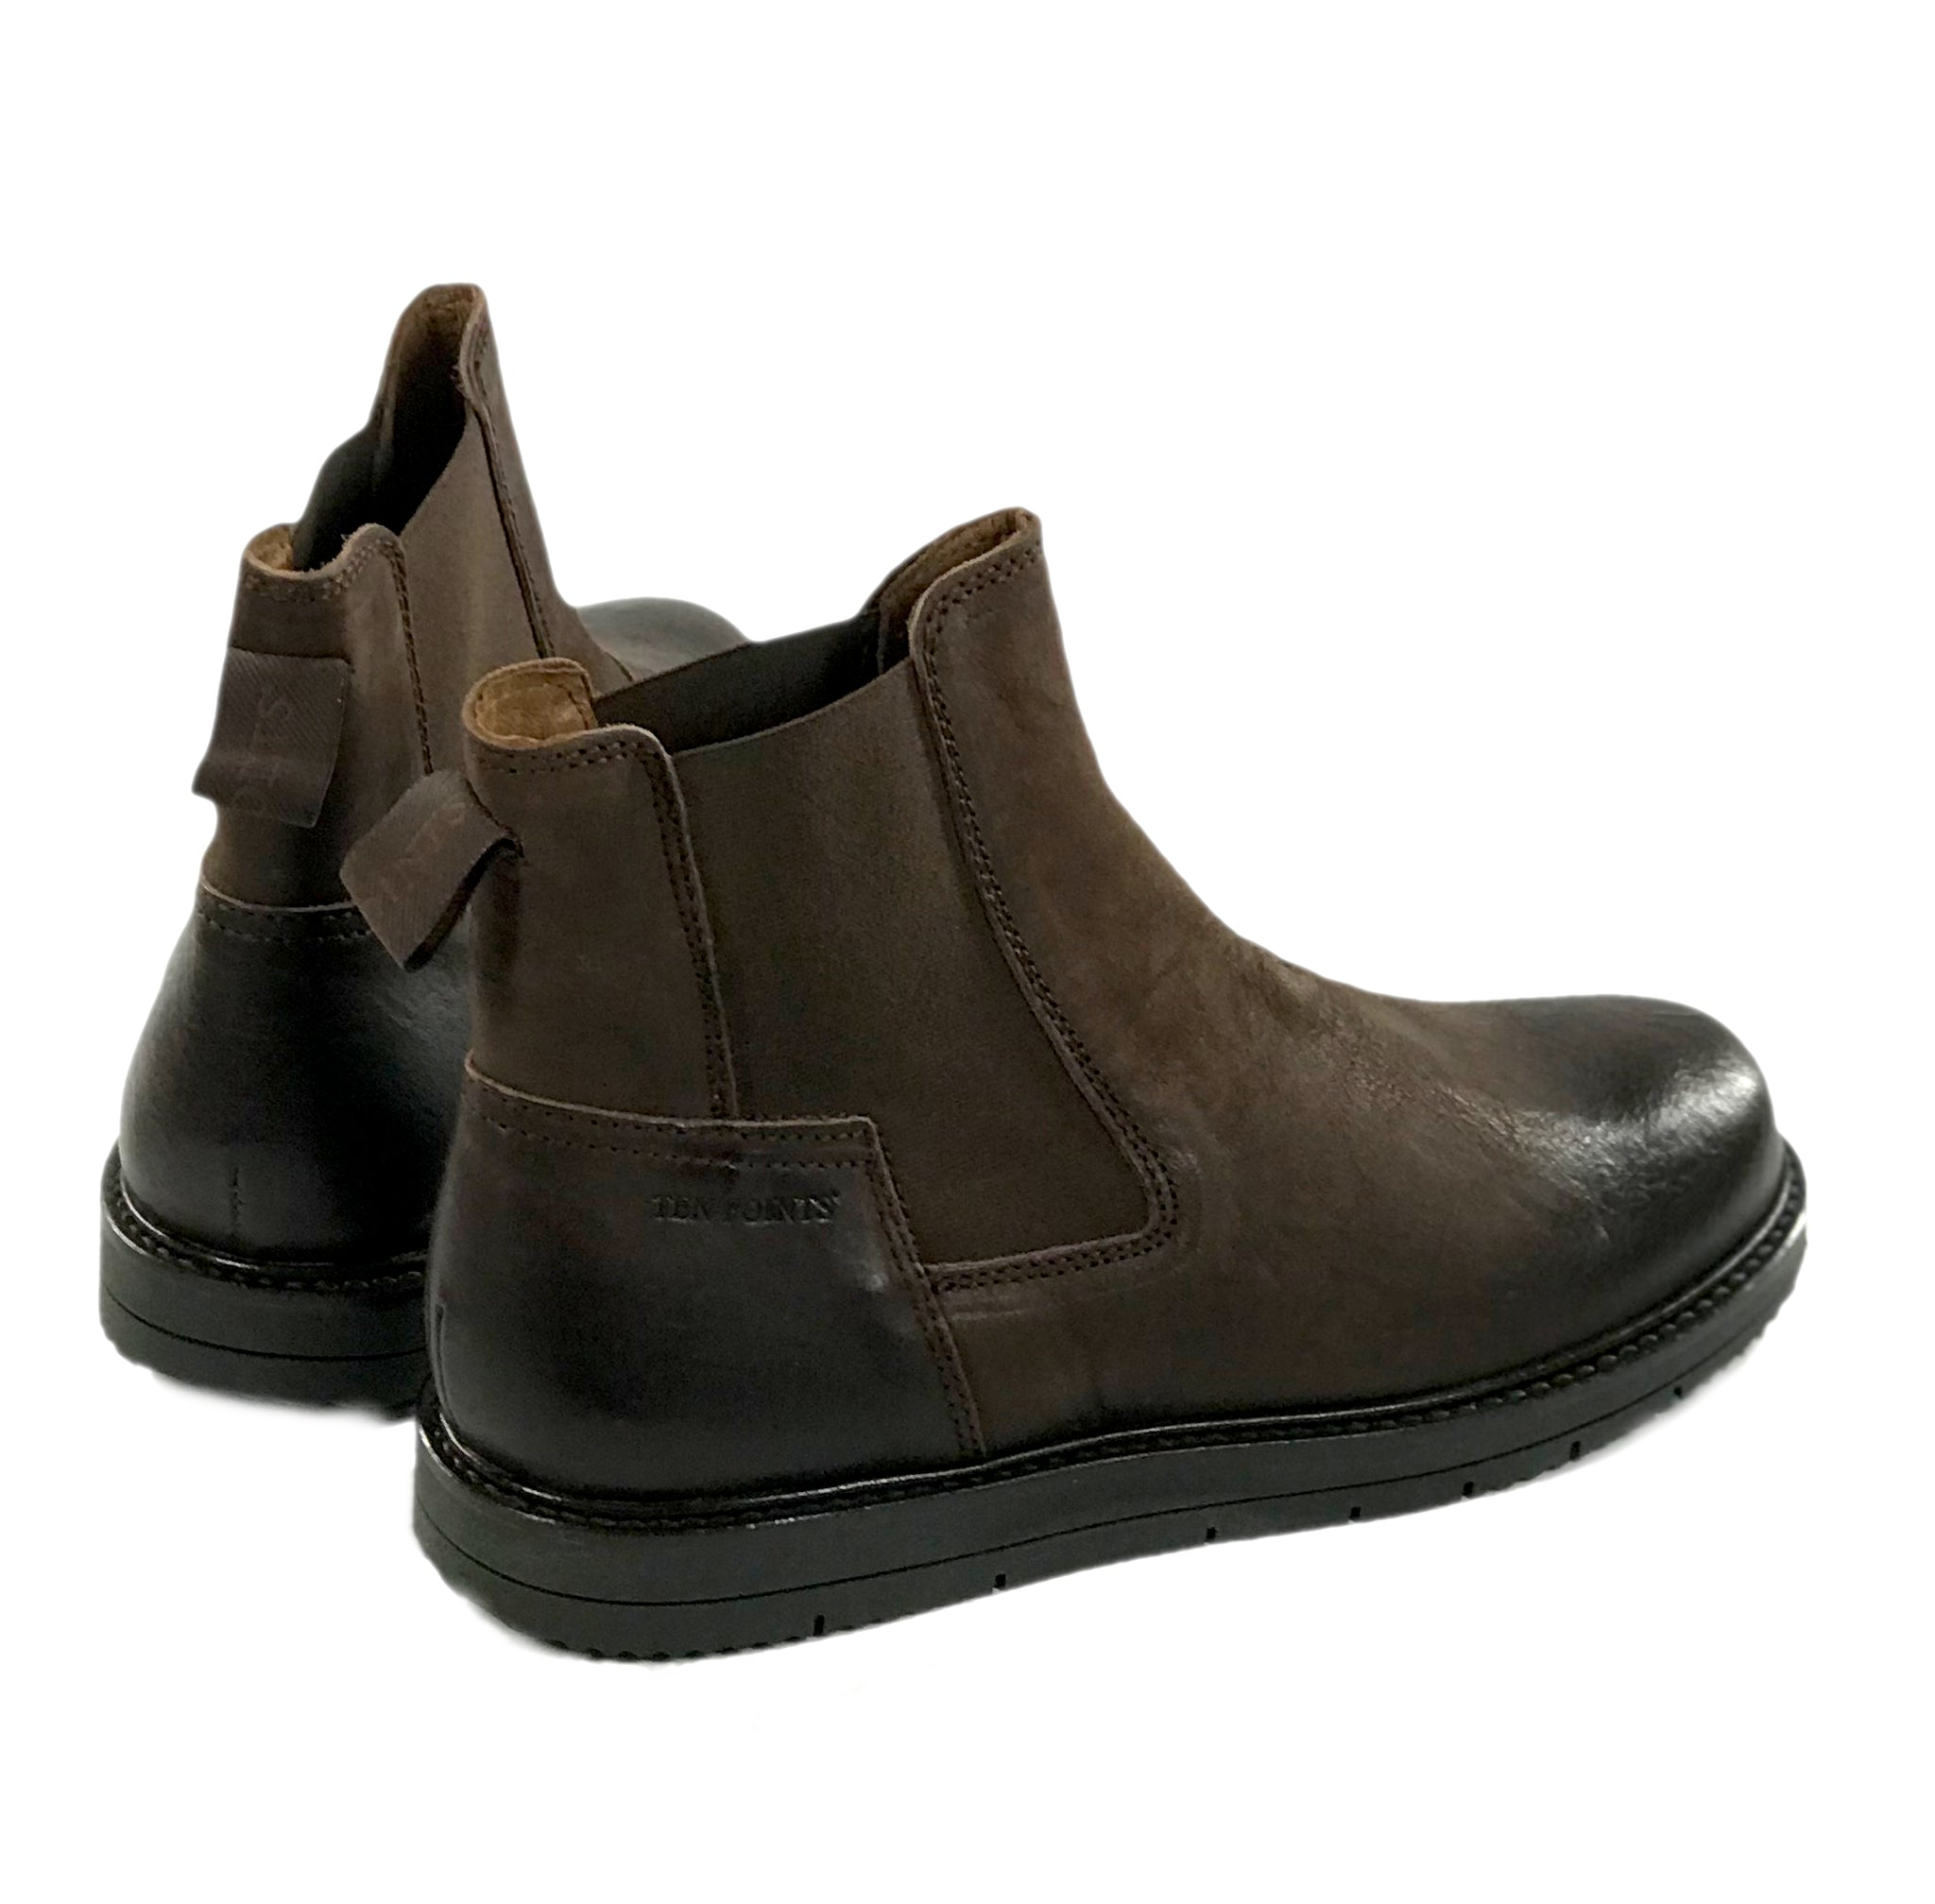 Chelseas Carina, lined with leather, dark brown